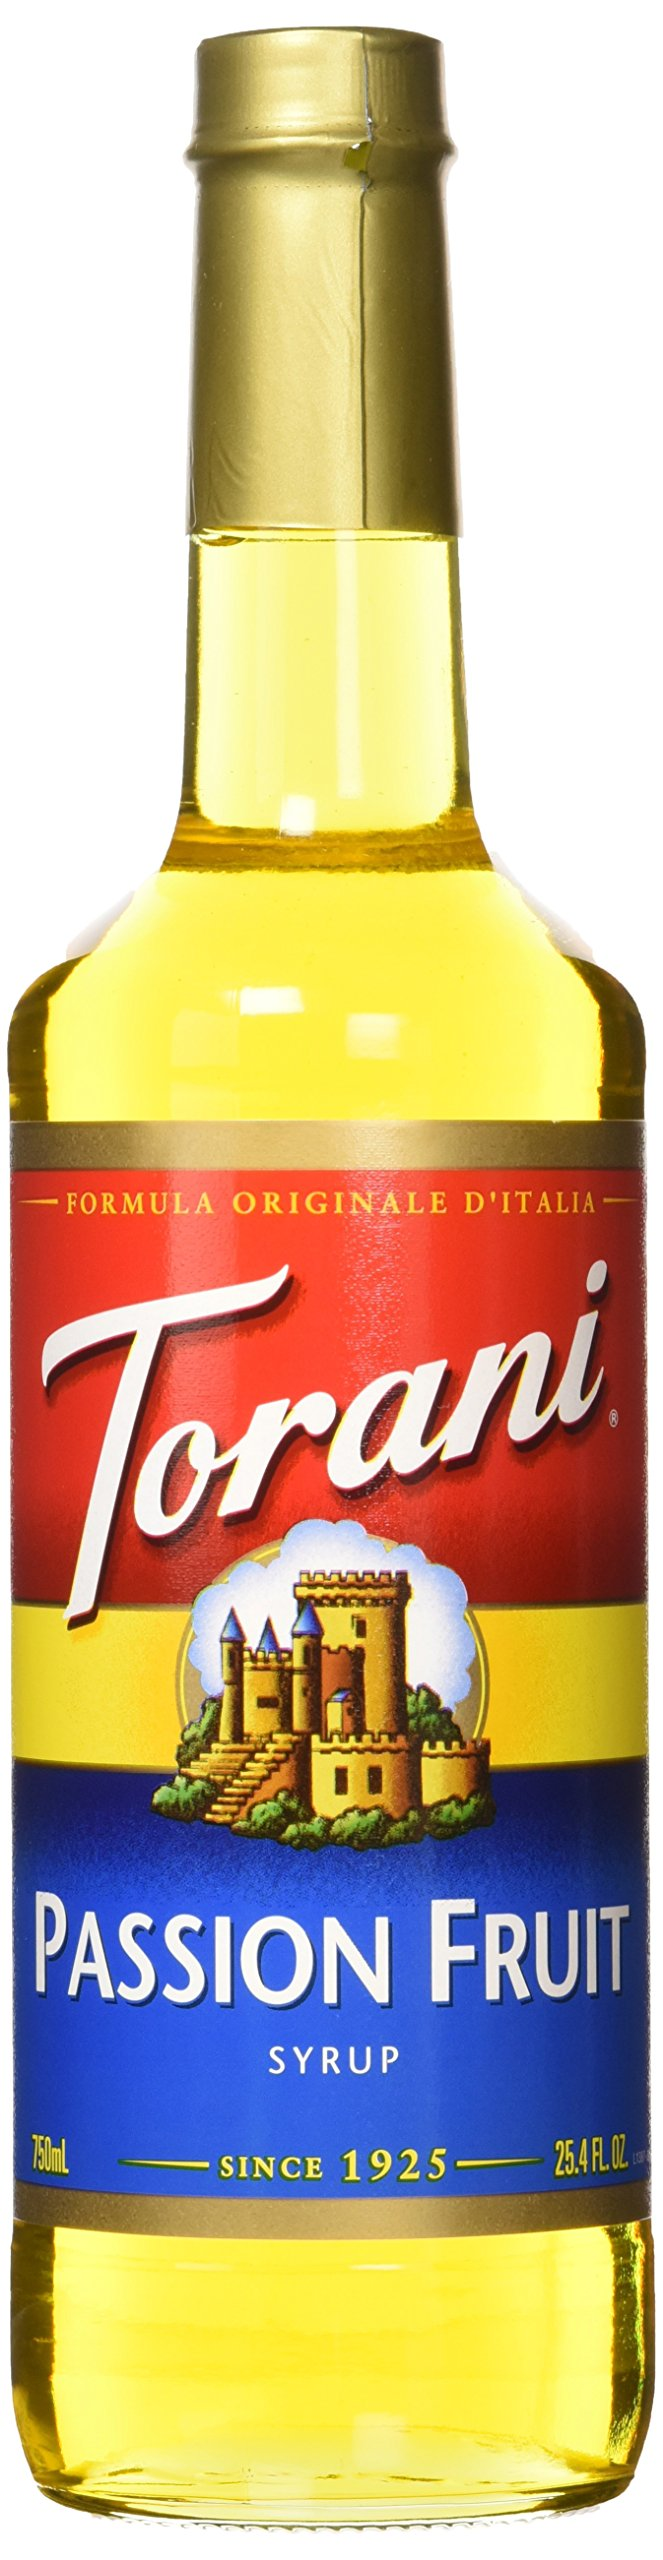 TORANI PASSION FRUIT